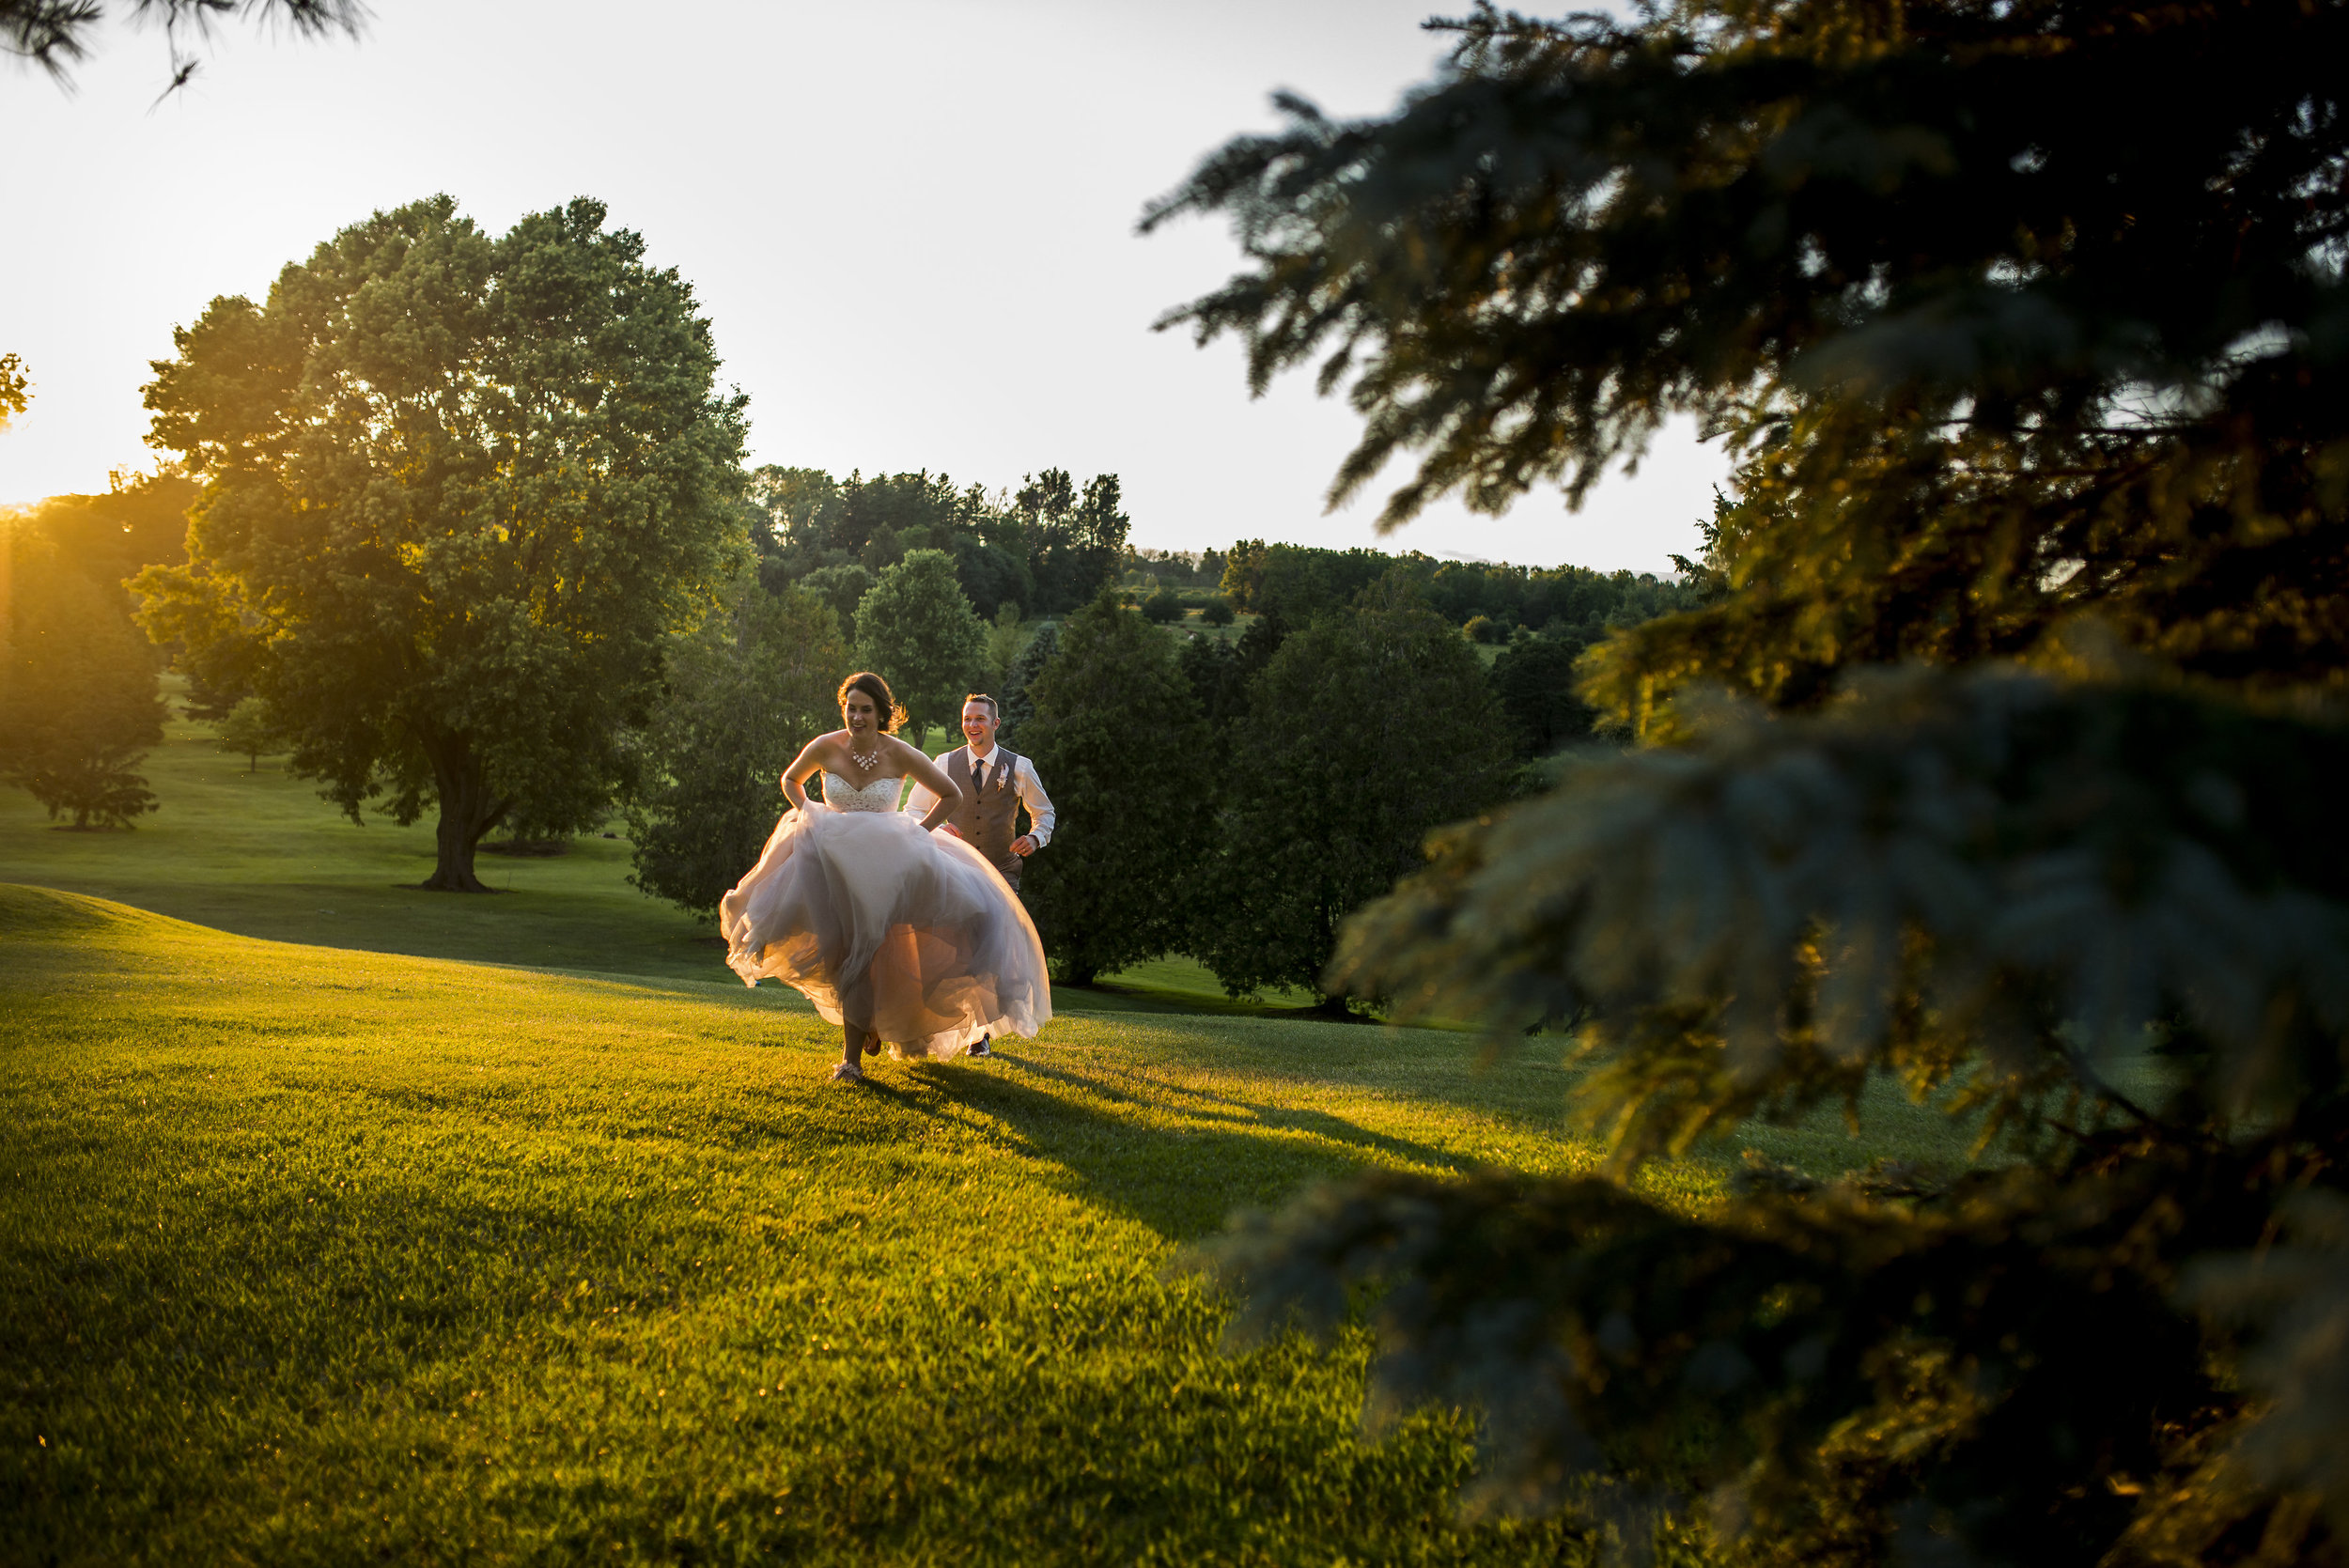 The bride playfully being chased by her groom during sunset makes for perfect candid shots. Photography:    Jen Linfield   .